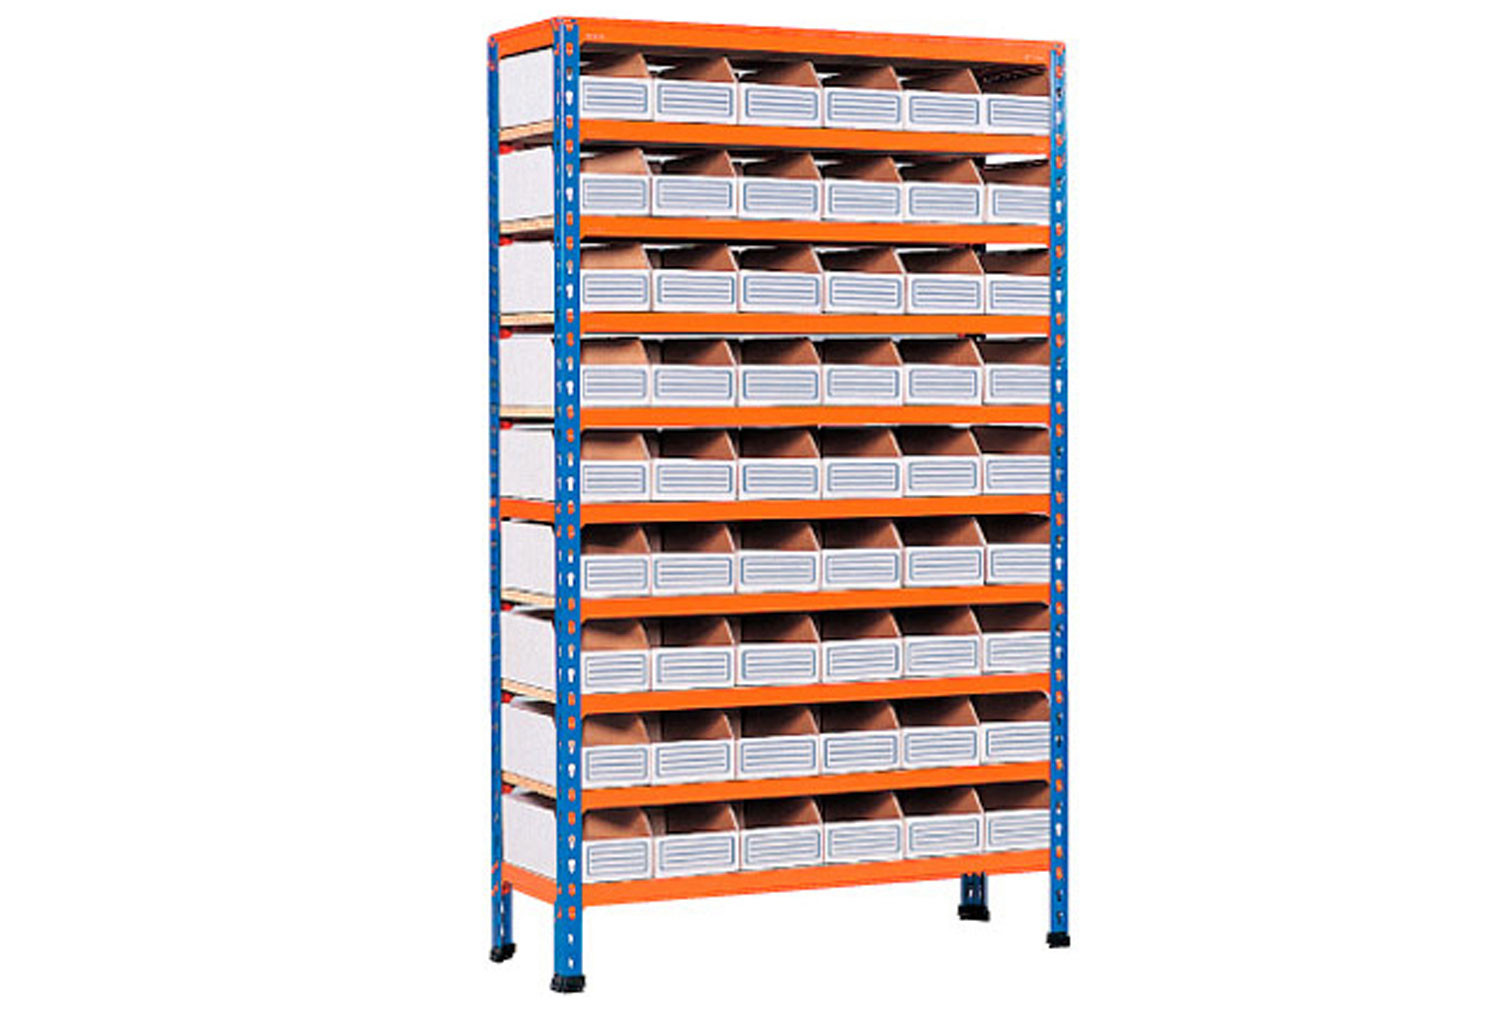 Rapid 2 shelving with 54 cardboard picking bins